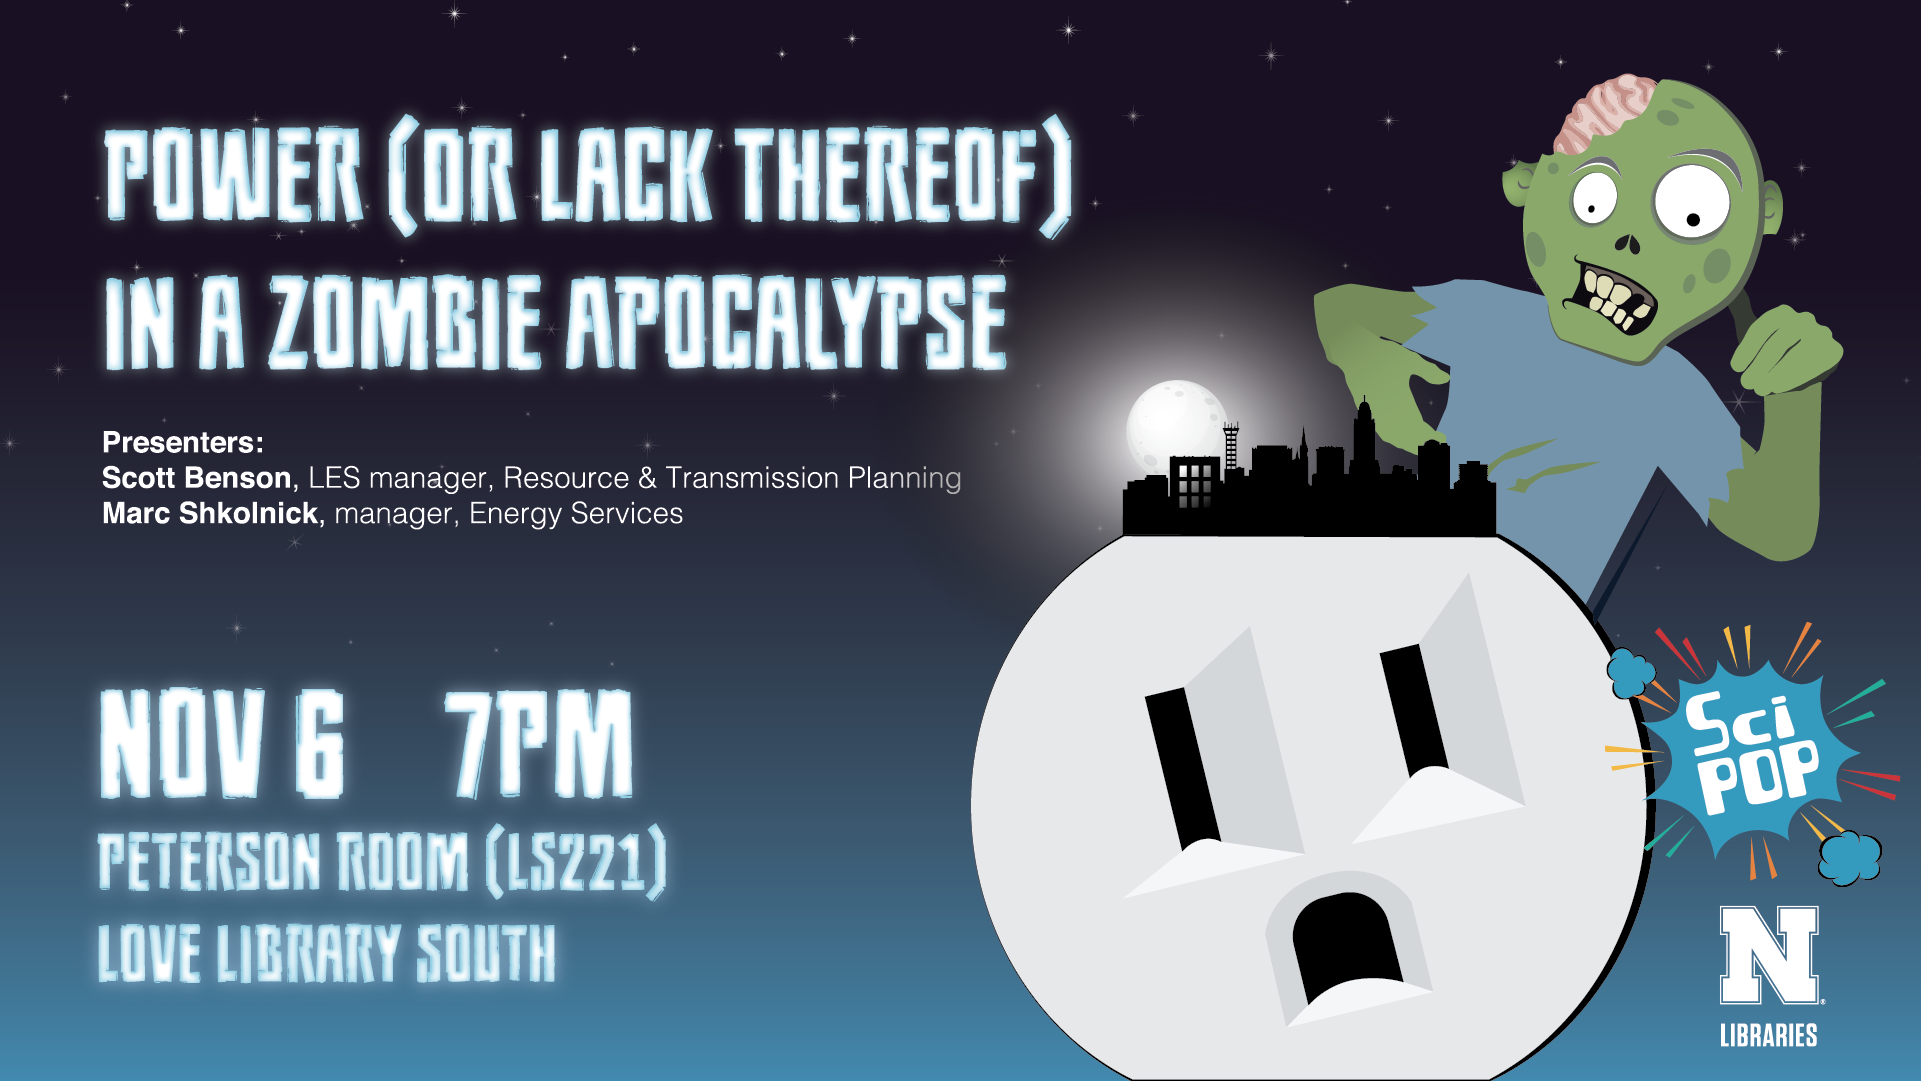 Image of a zombie looming above city skyline sitting on top of a giant scared electrical outlet, along with the name of the talk, speaker, and location information.